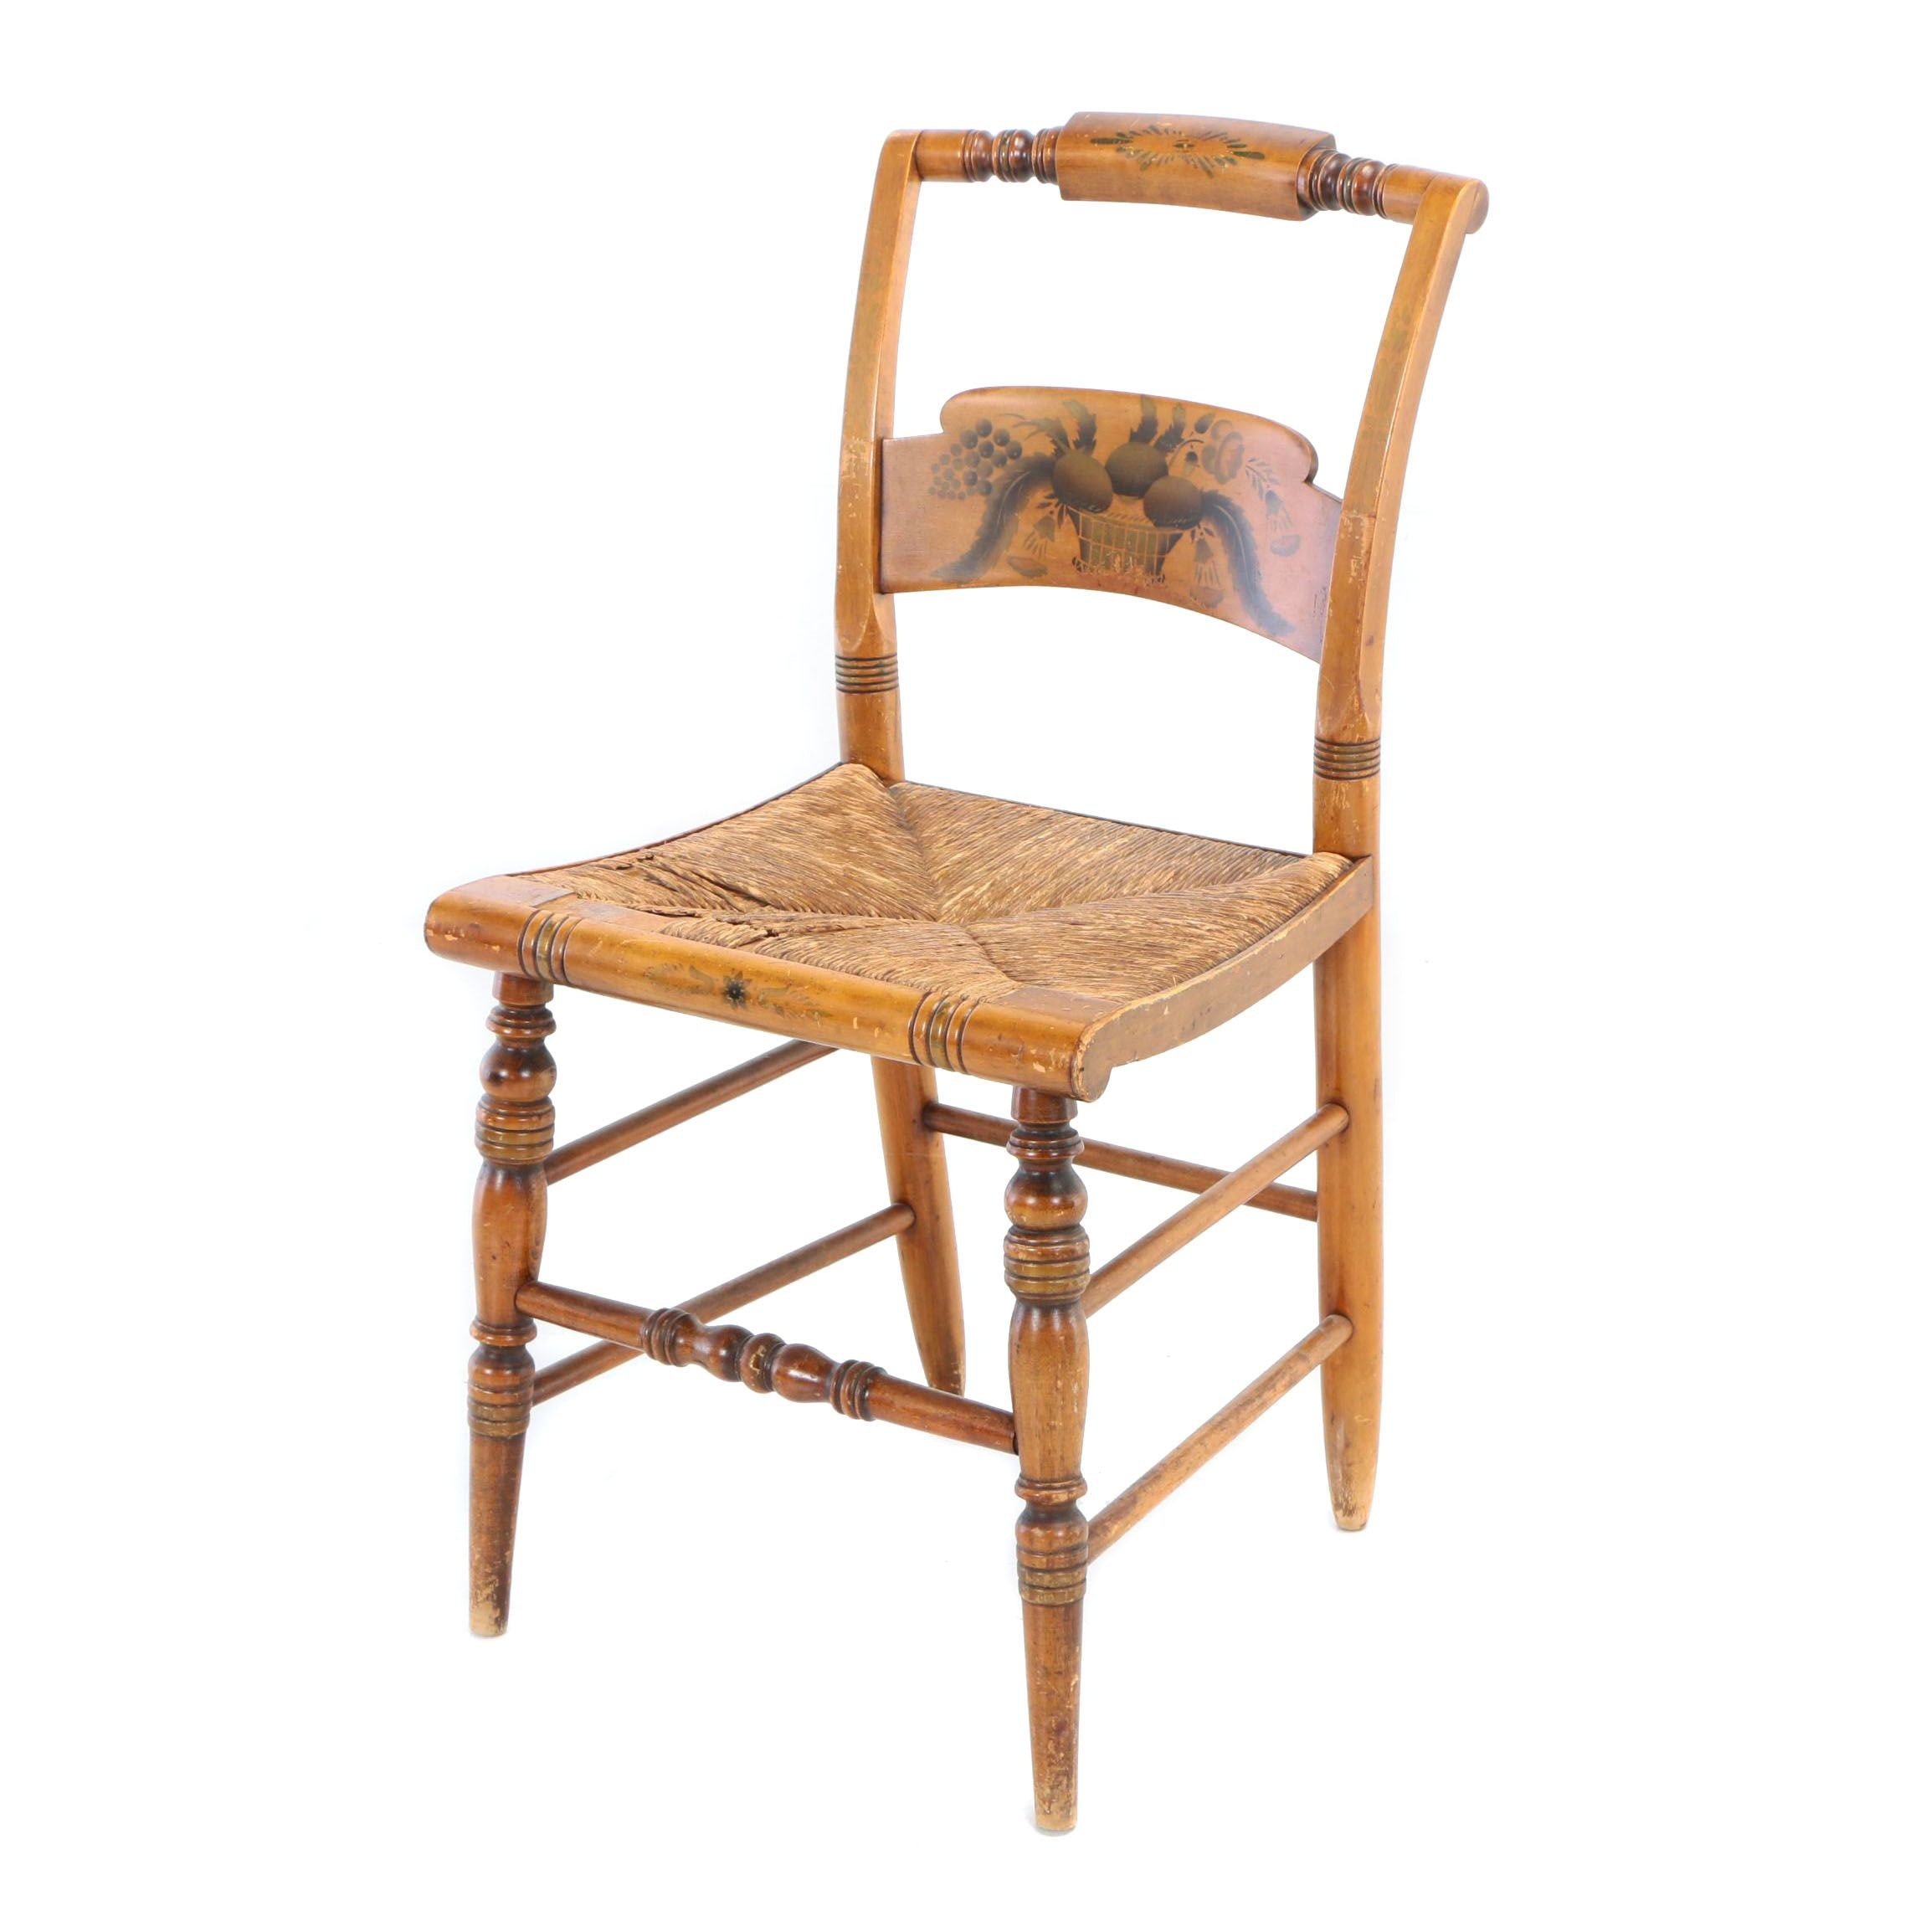 L. Hitchcock Gilt-Stenciled Fancy Side Chair, 20th Century